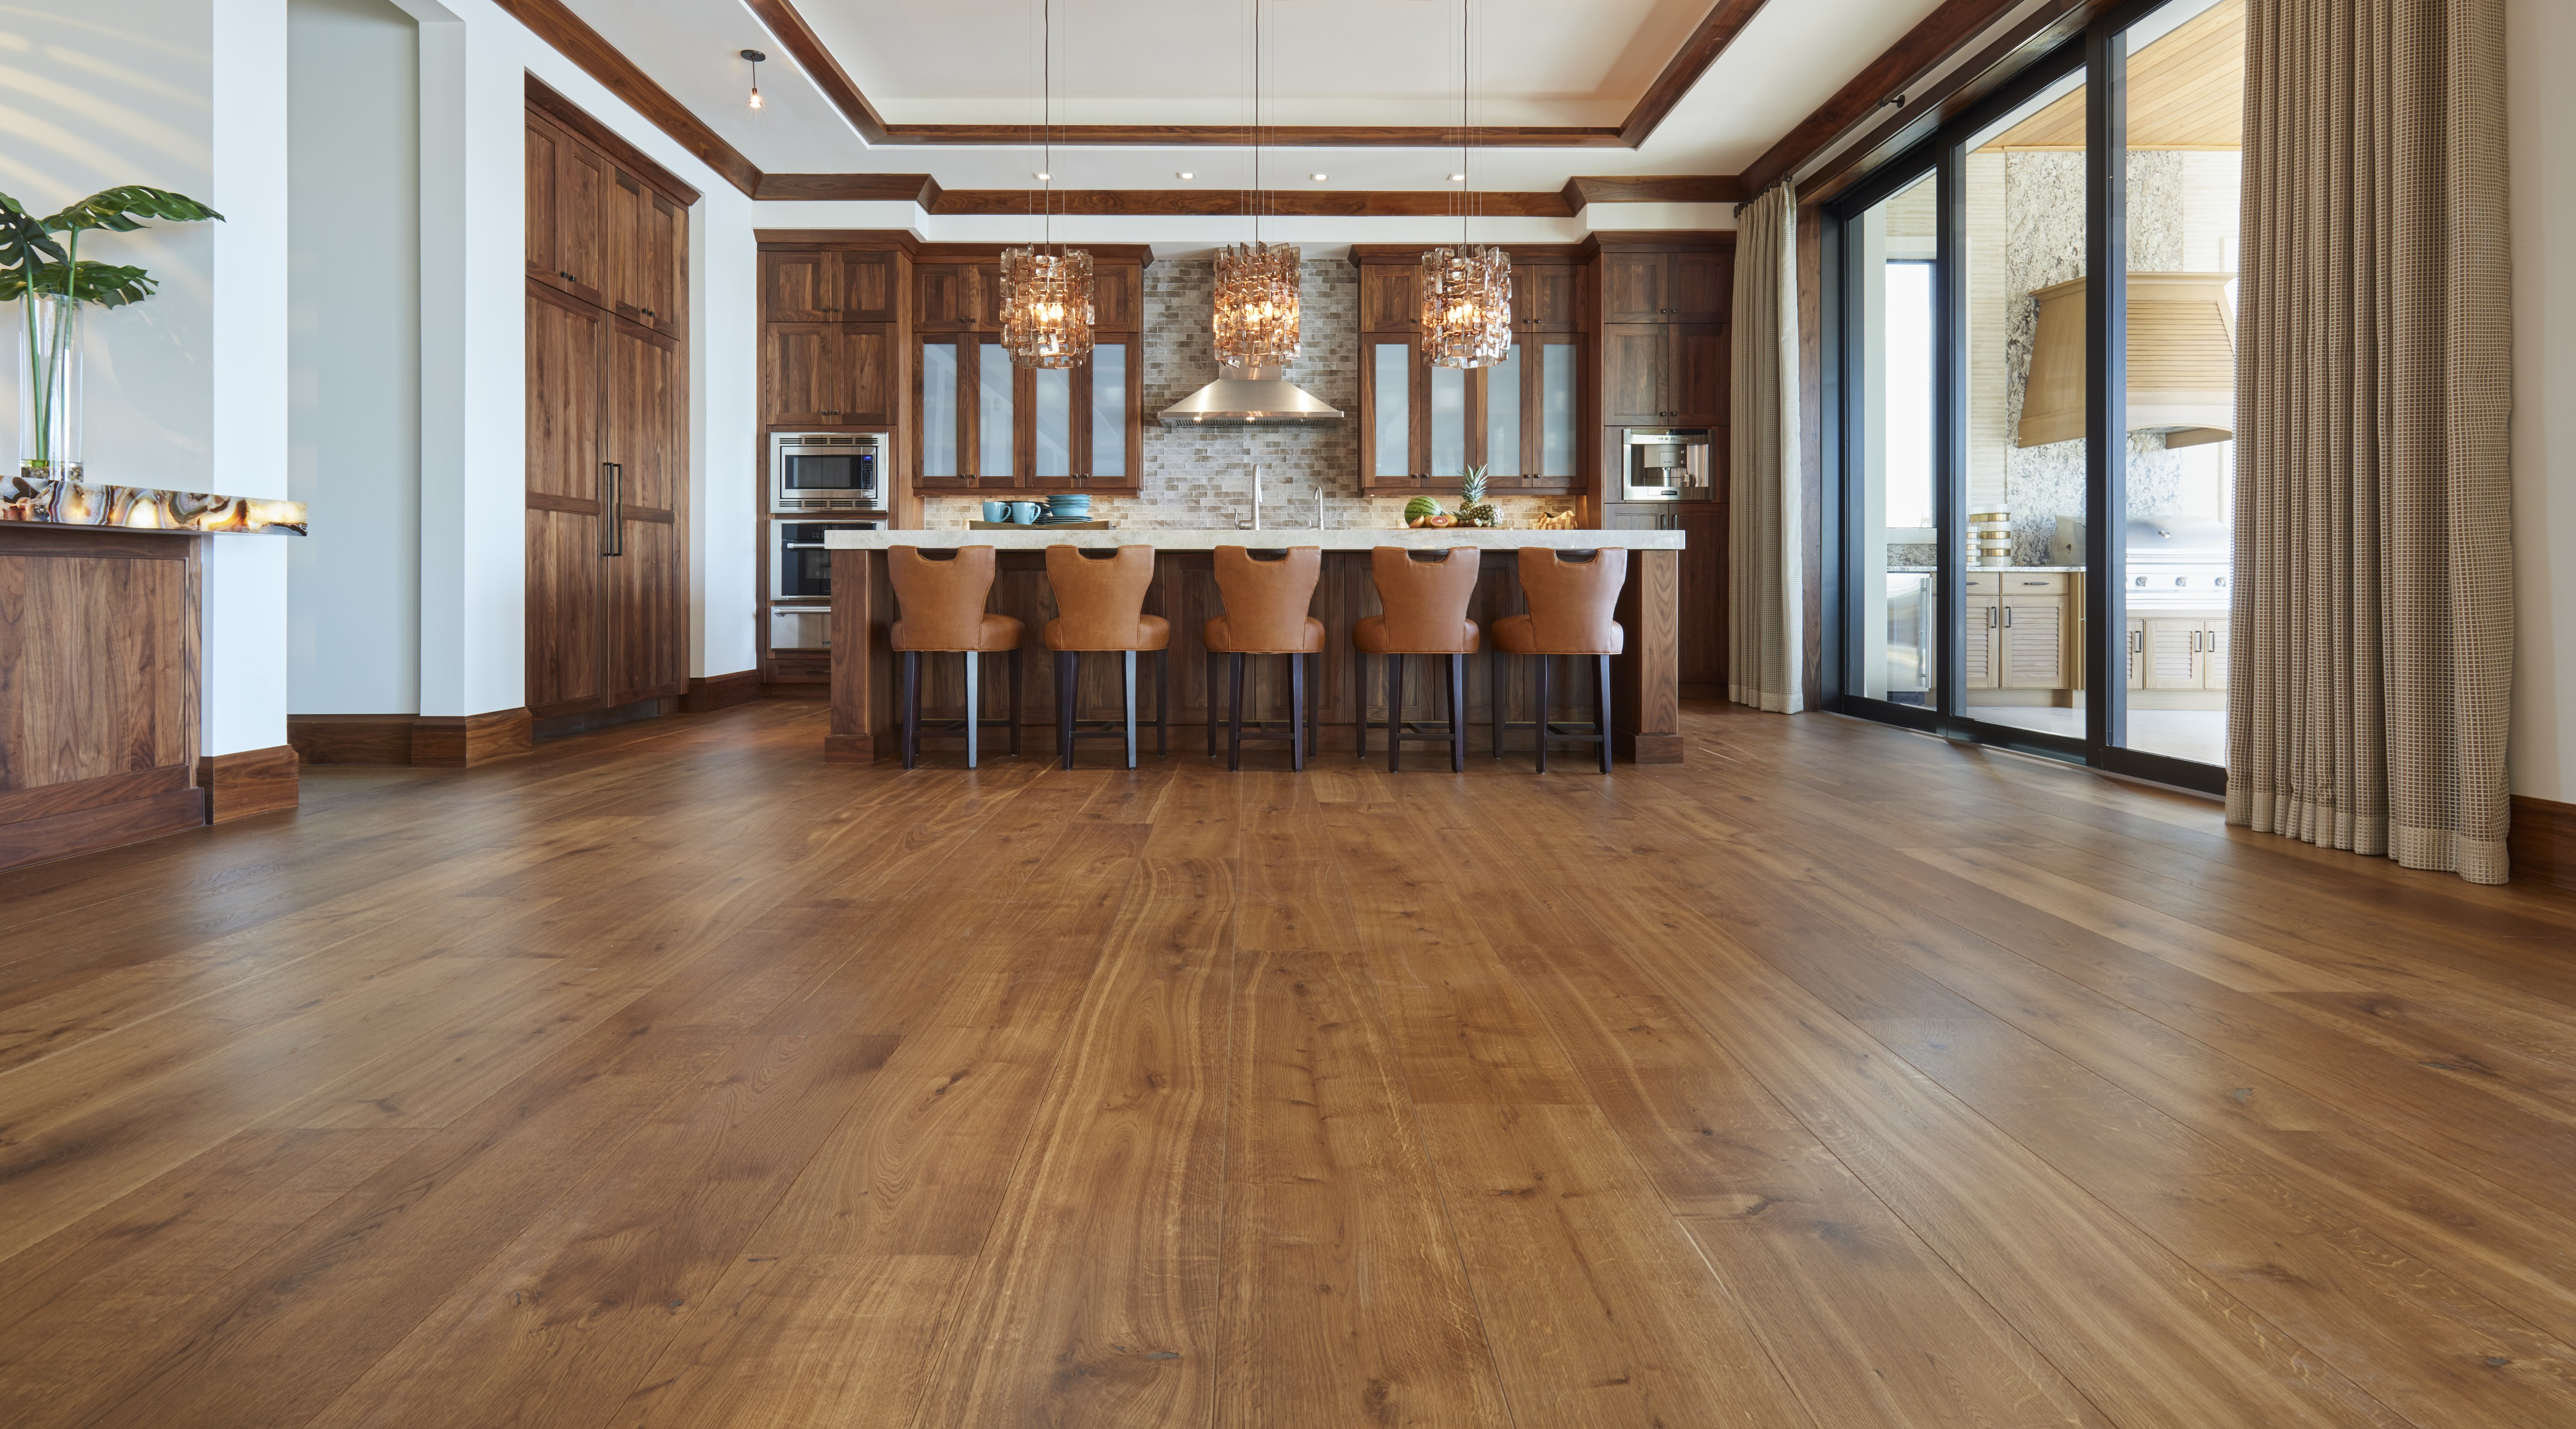 The Benefits of Using a Natural Finish on Your Hardwood Floors